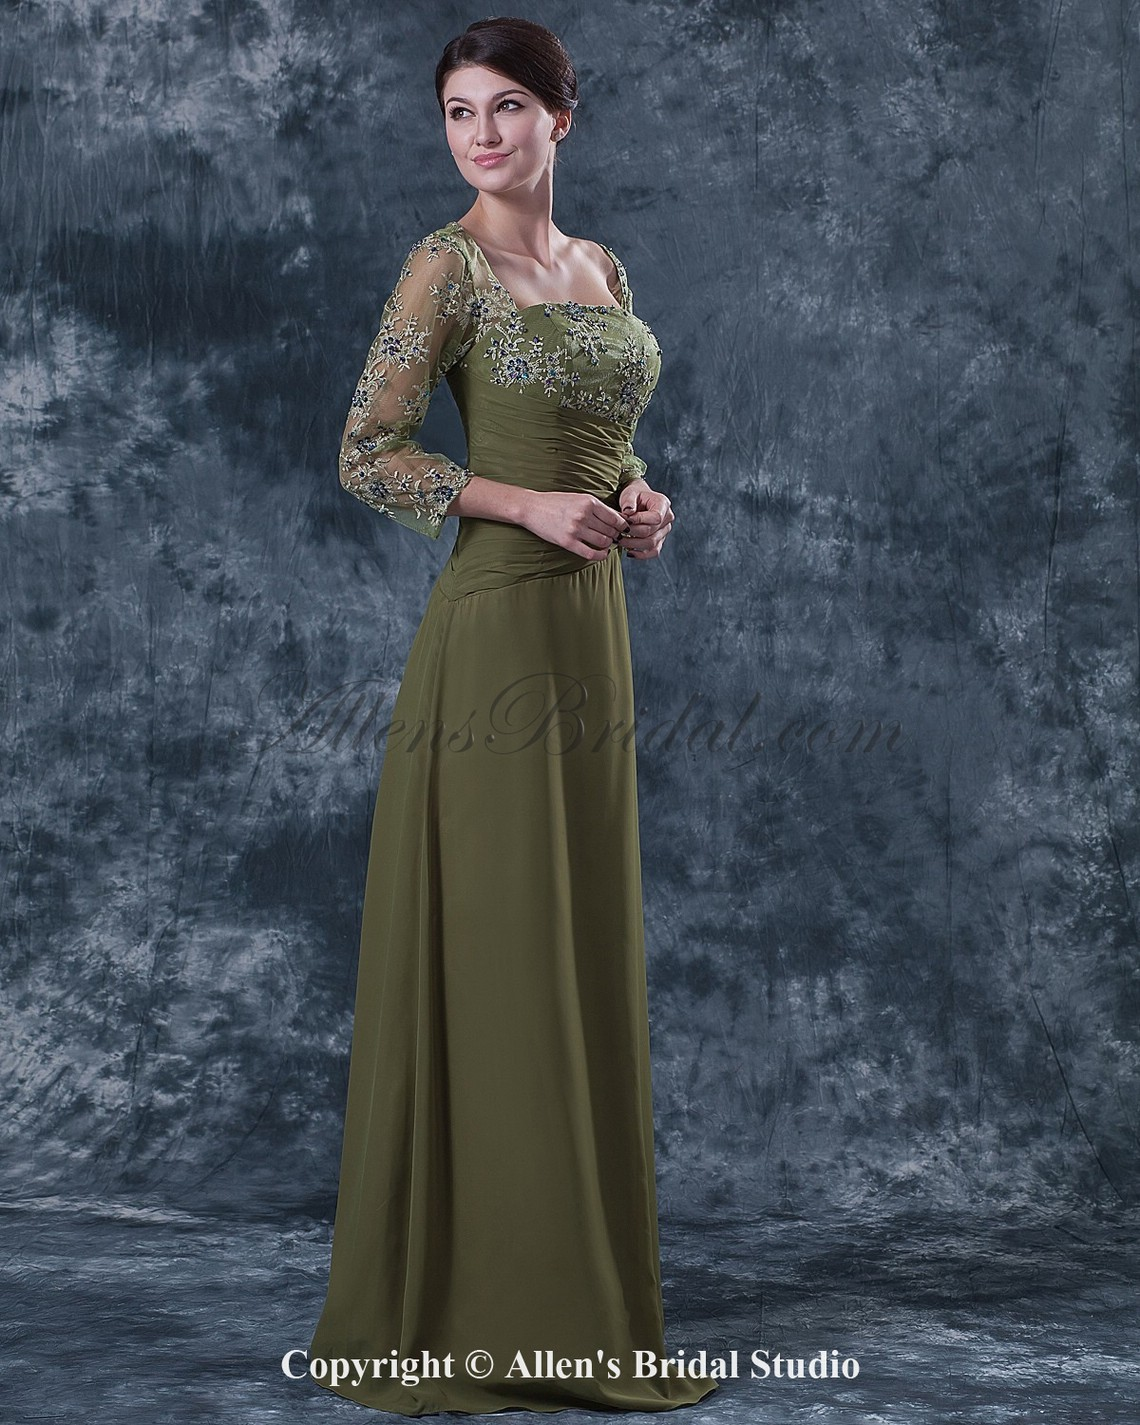 /1118-8998/chiffon-and-lace-square-neckline-floor-length-column-mother-of-the-bride-dress-with-three-quarter-sleeves.jpg